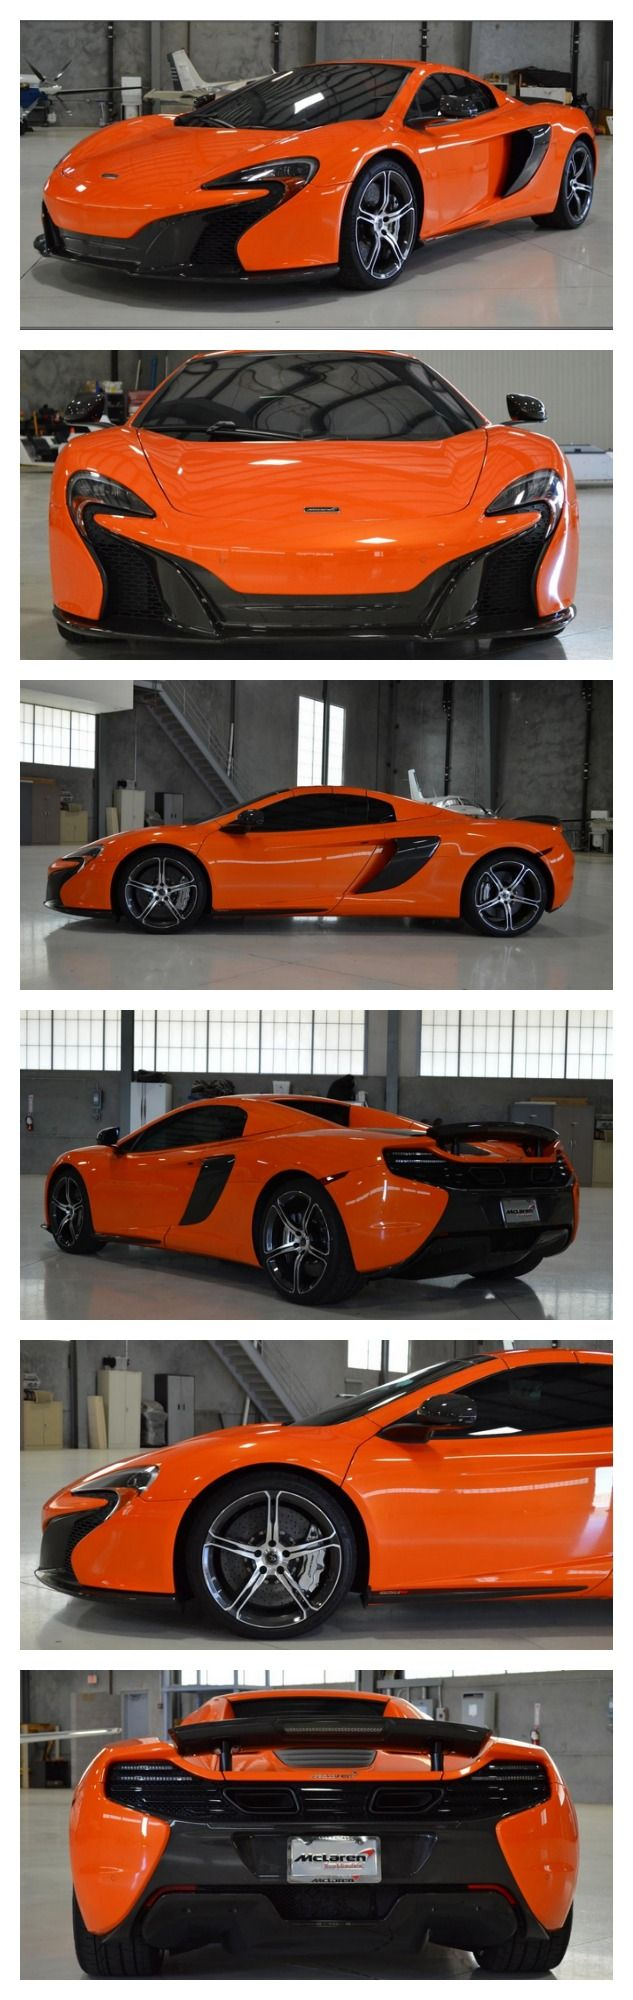 McLaren's latest offering? Check out the furiously fast McLaren 650S #Carporn